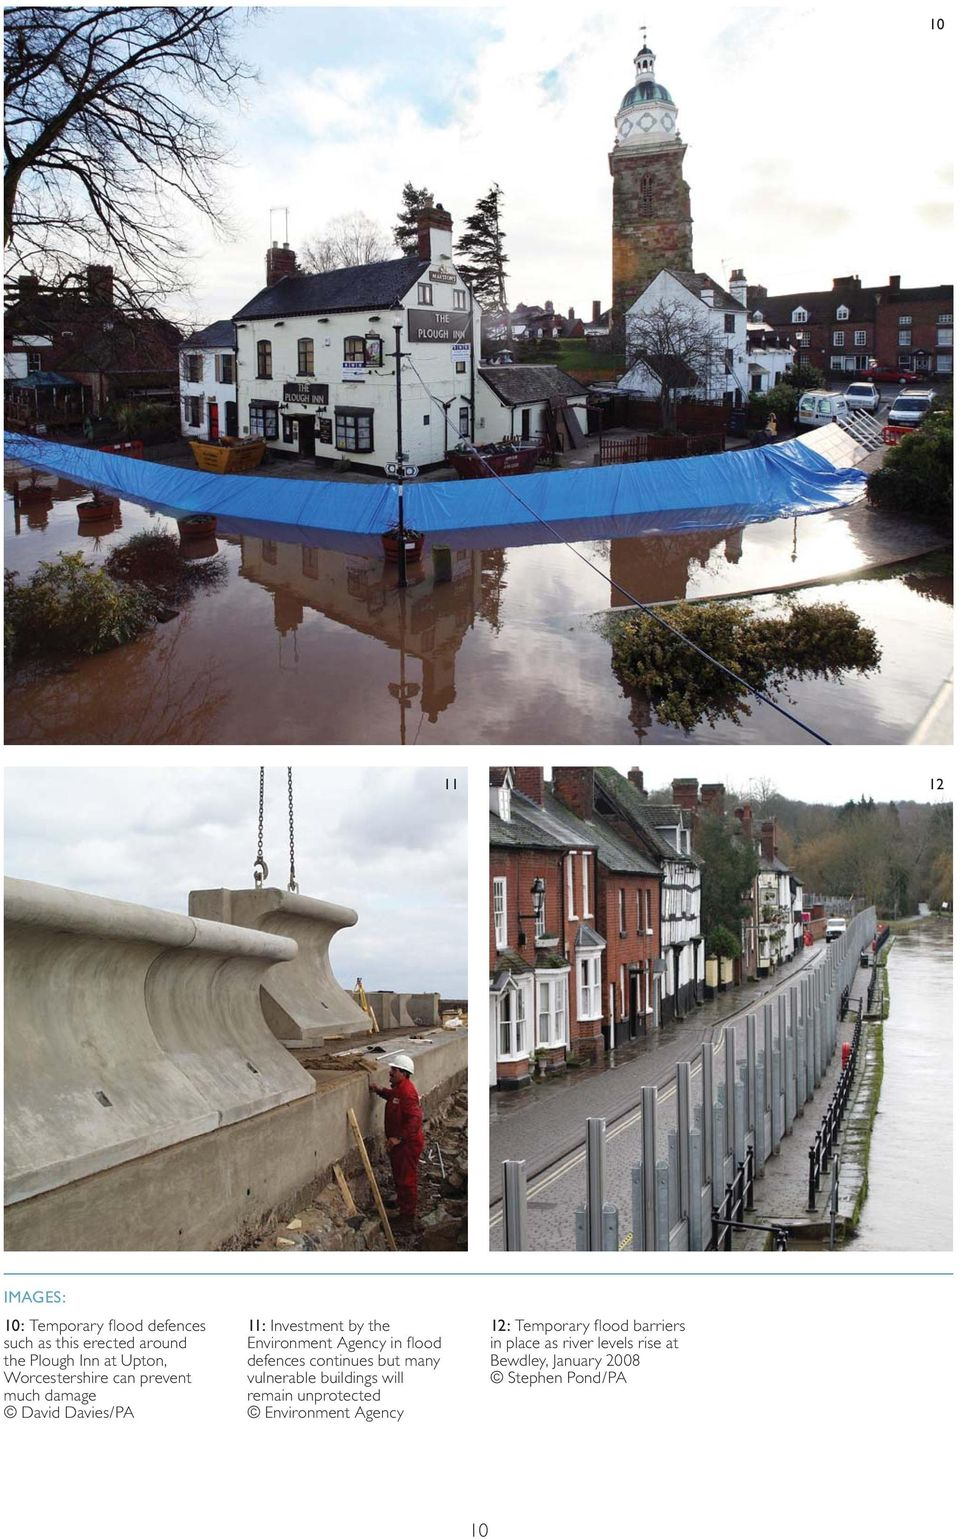 flood defences continues but many vulnerable buildings will remain unprotected Environment Agency